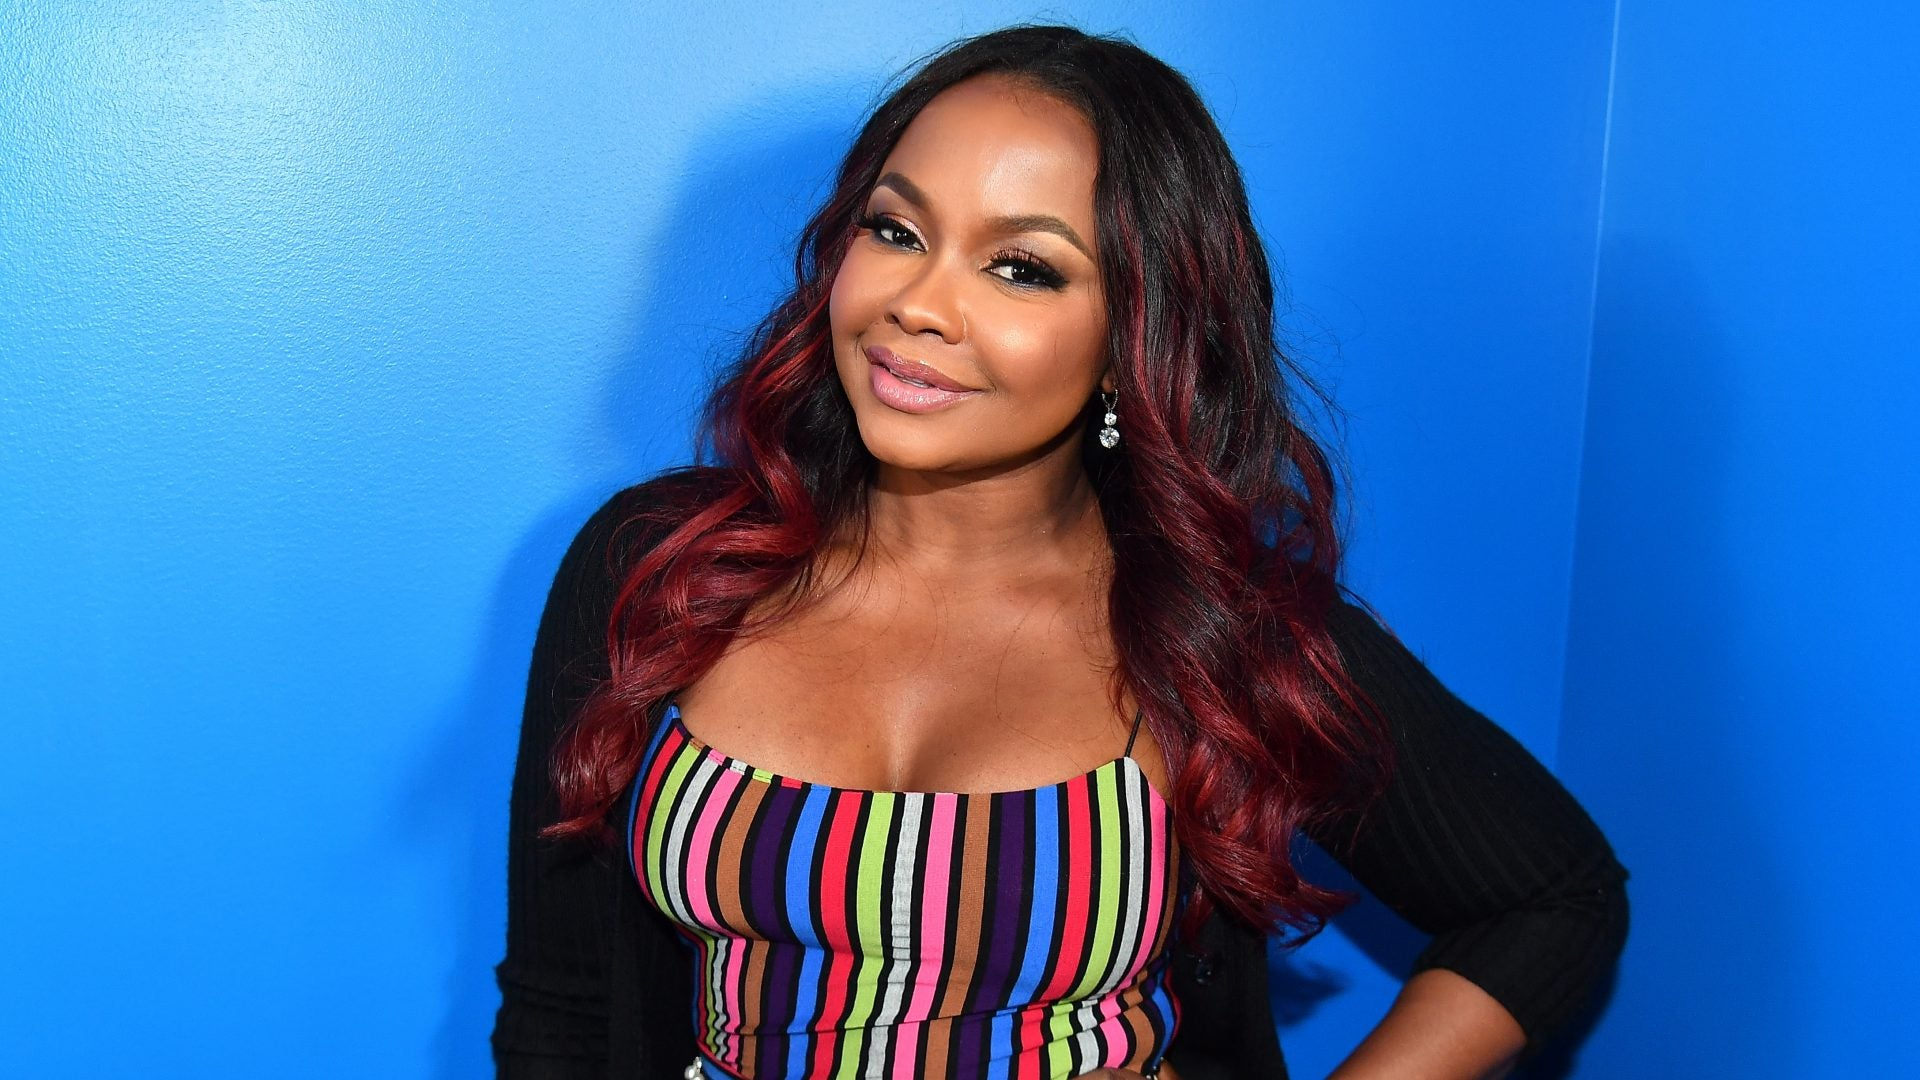 phaedra-parks-shares-an-emotional-message-following-the-death-of-chadwick-boseman